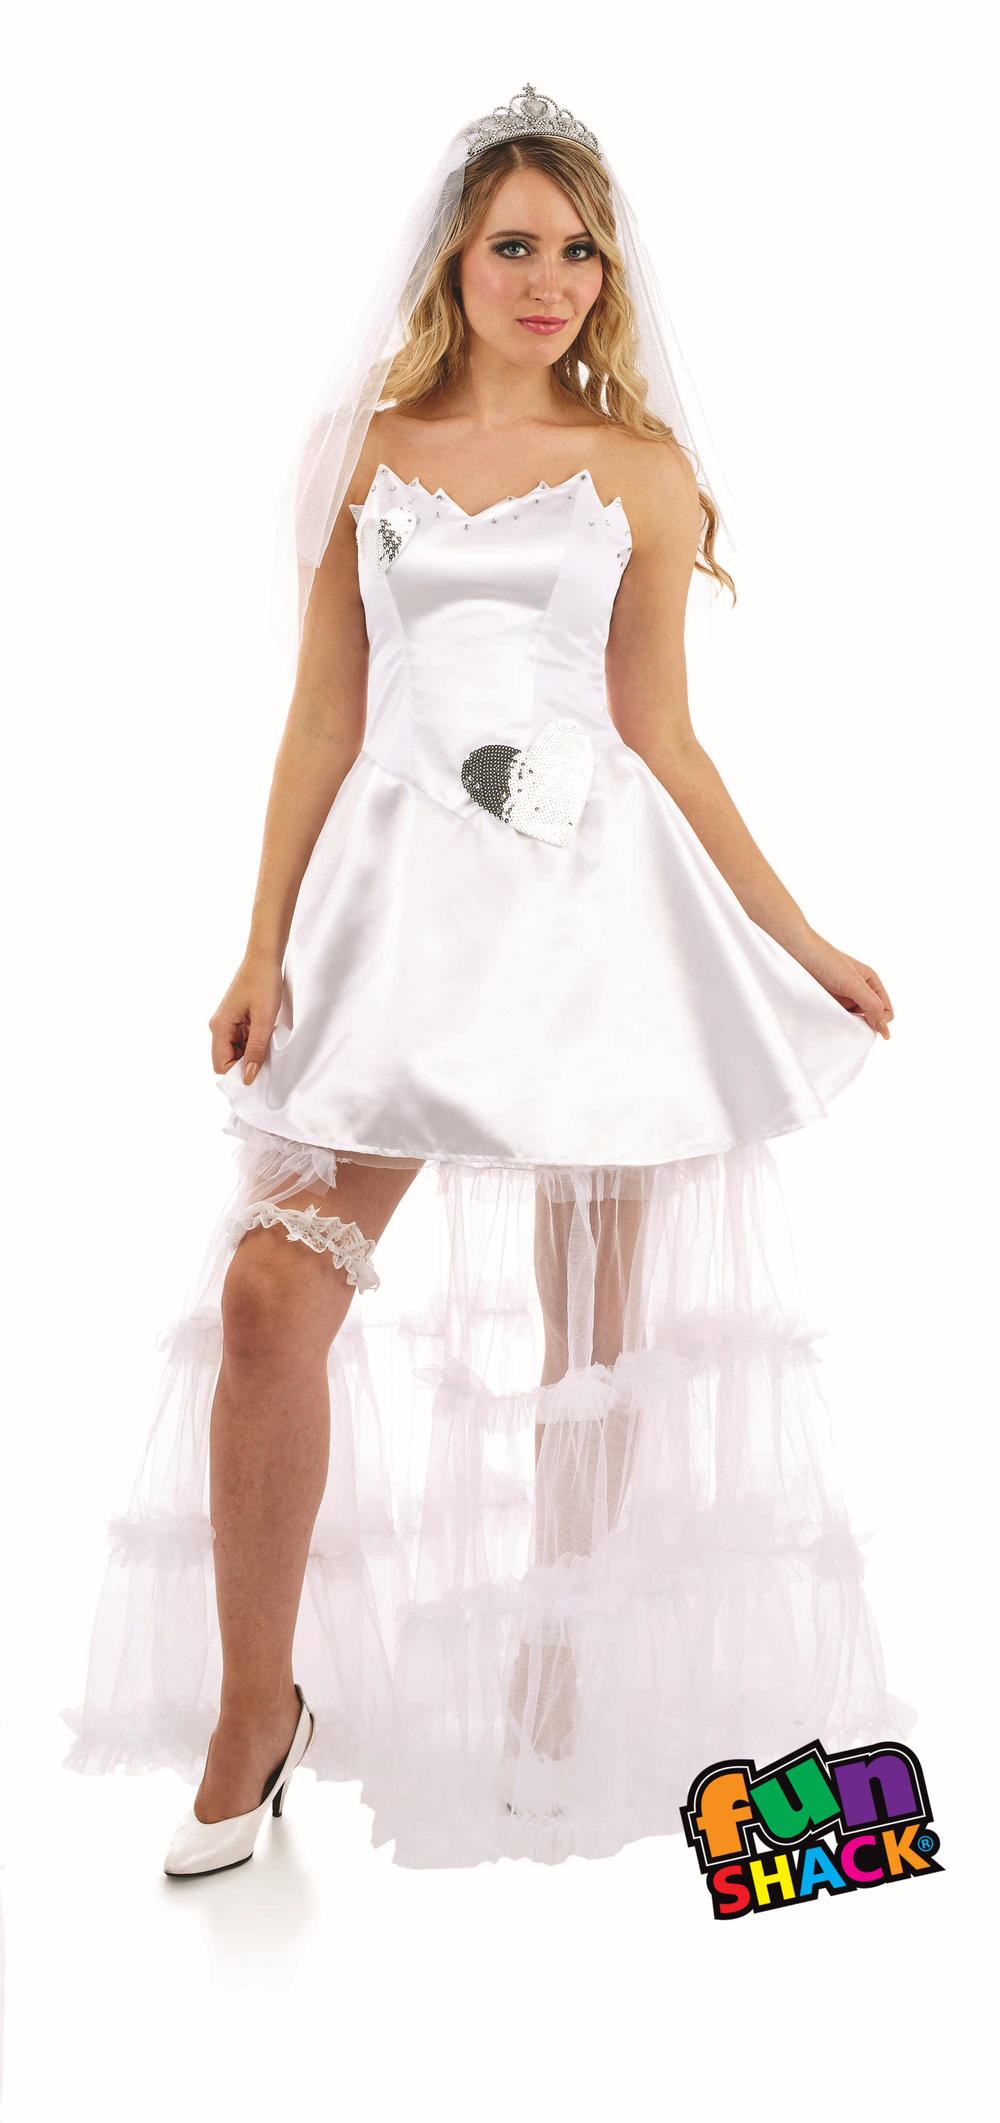 Ladies Bride Fancy Dress Wedding Hen Night Womens Adults Party Costume Outfit